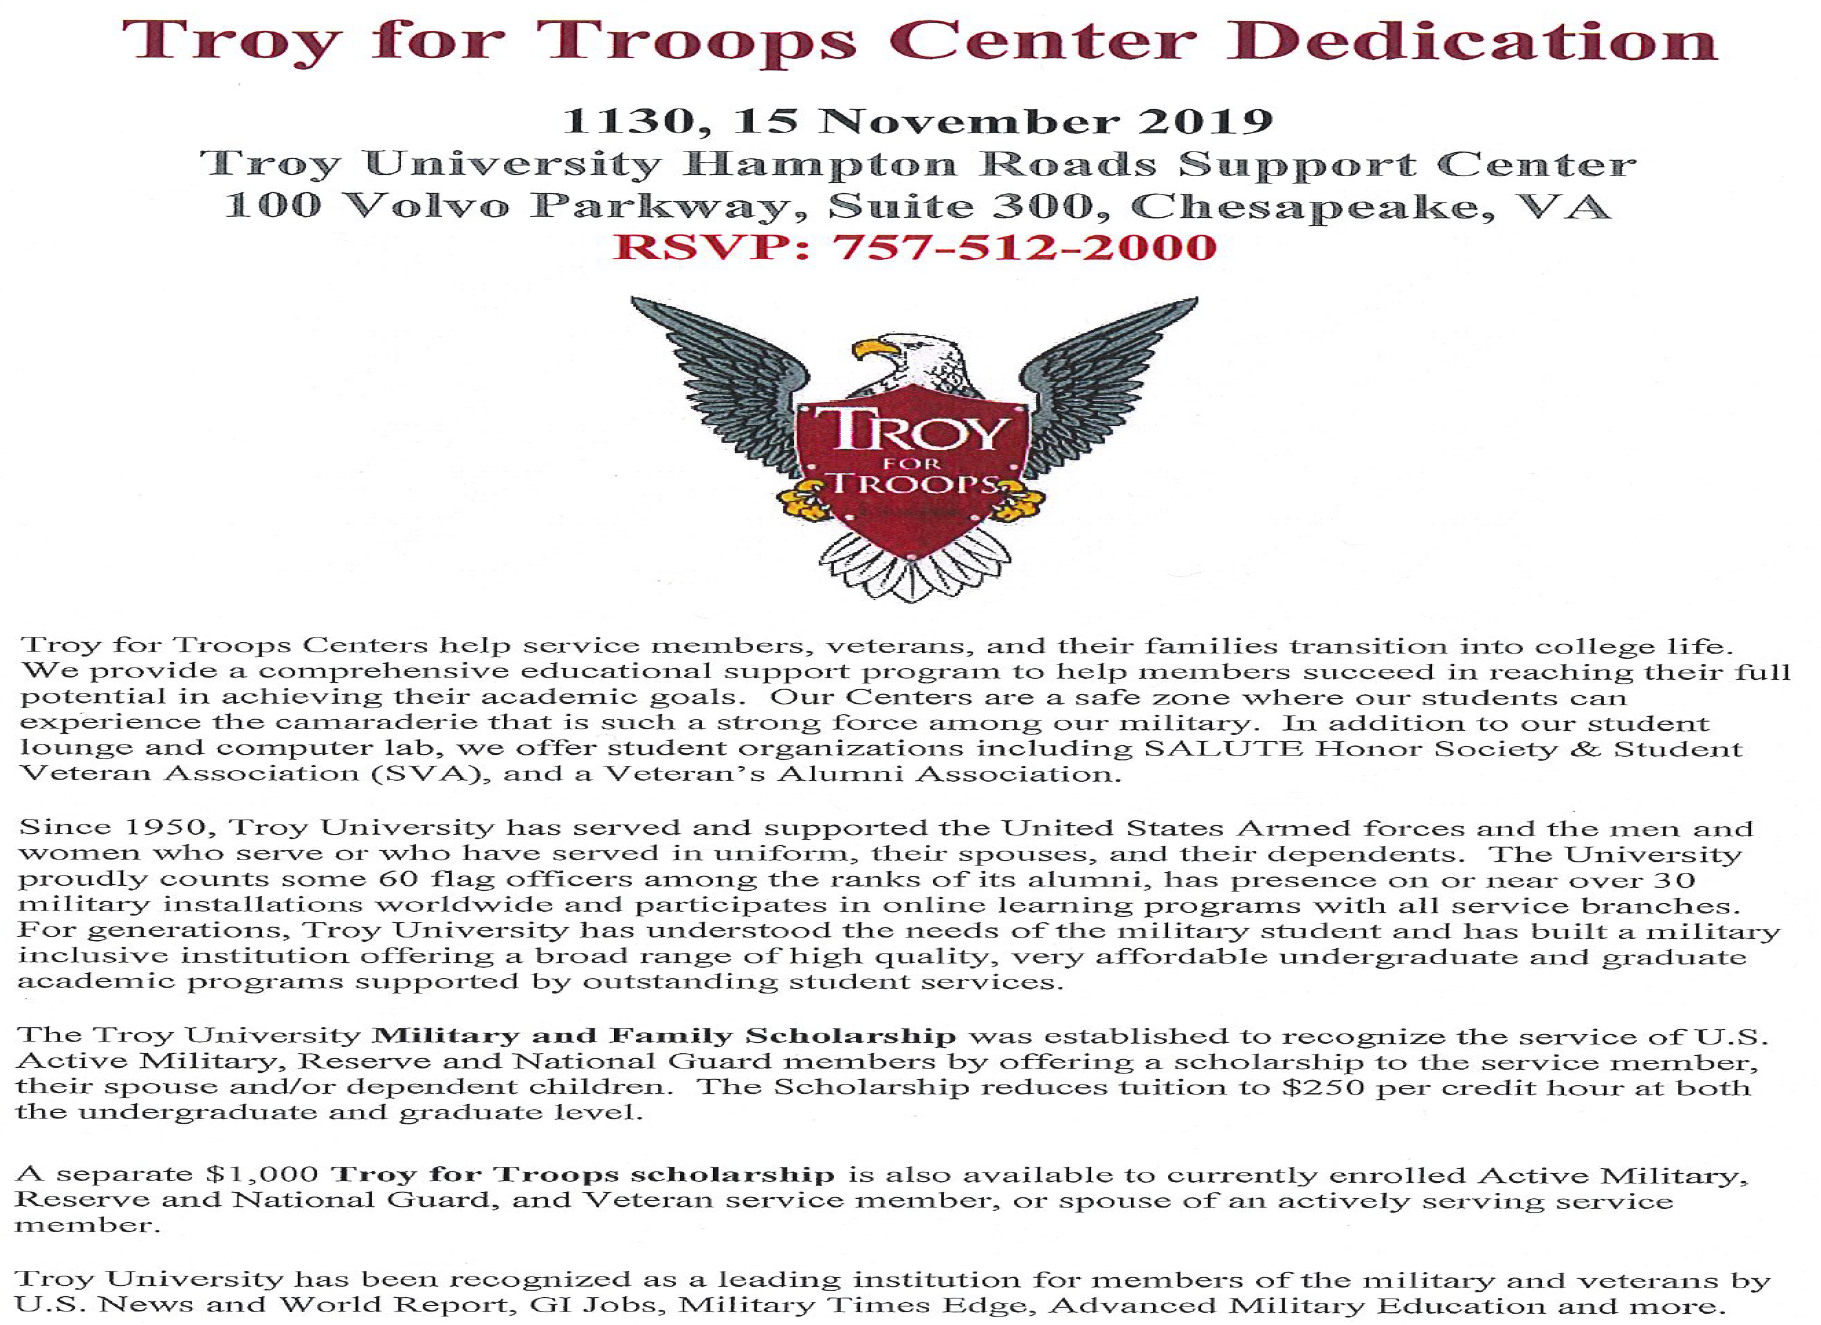 Troy University hosts Dedication Ceremony for Troy for Troops Center in Chesapeake